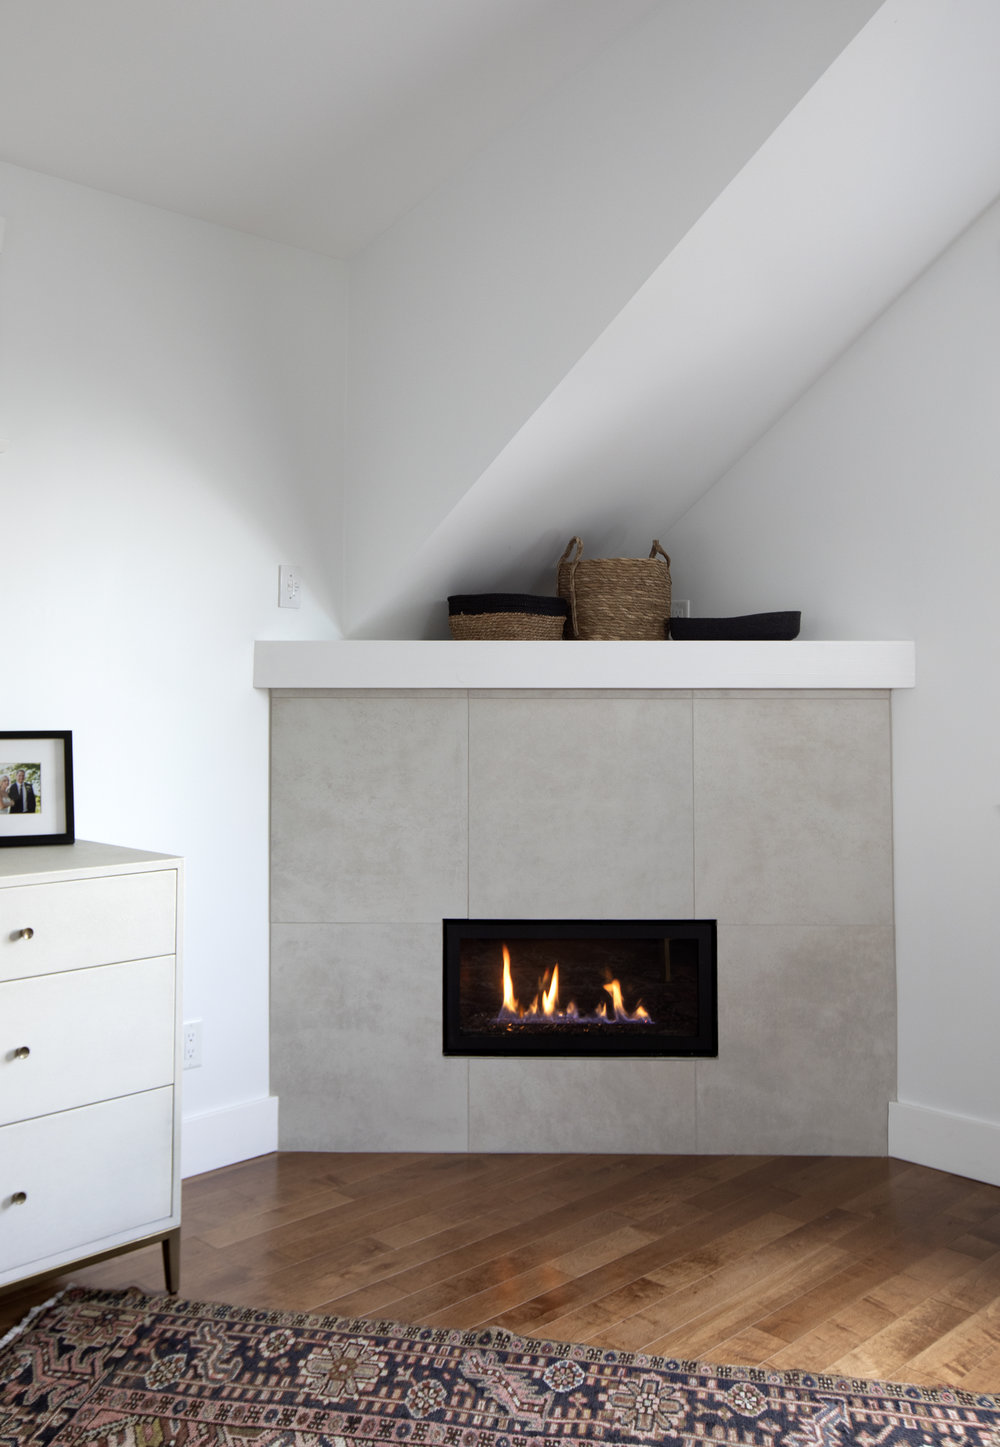 A fireplace set into the corner of the room is brightly let. Various wicker baskets sit on top of the mantel and a white dresser can be see to its left.